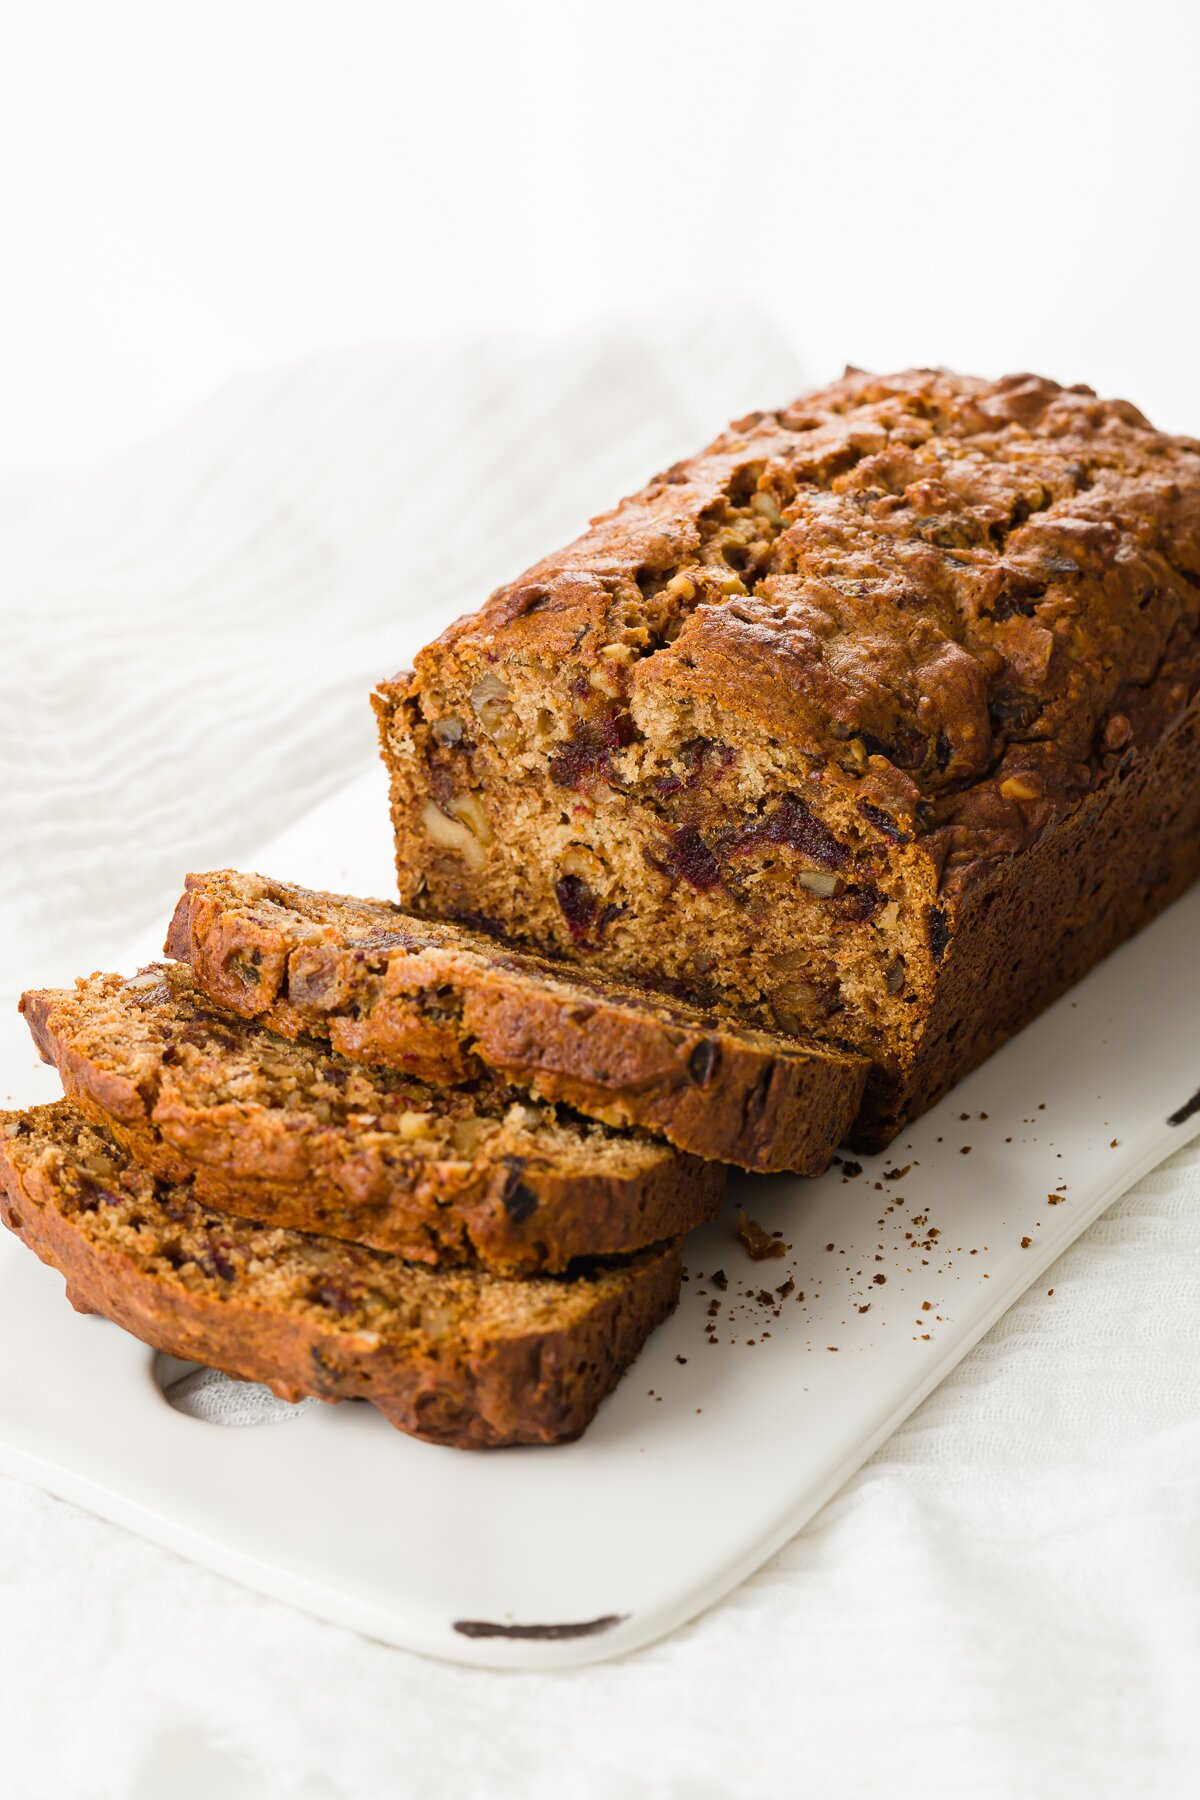 Date nut bread on a white serving plate, partially sliced